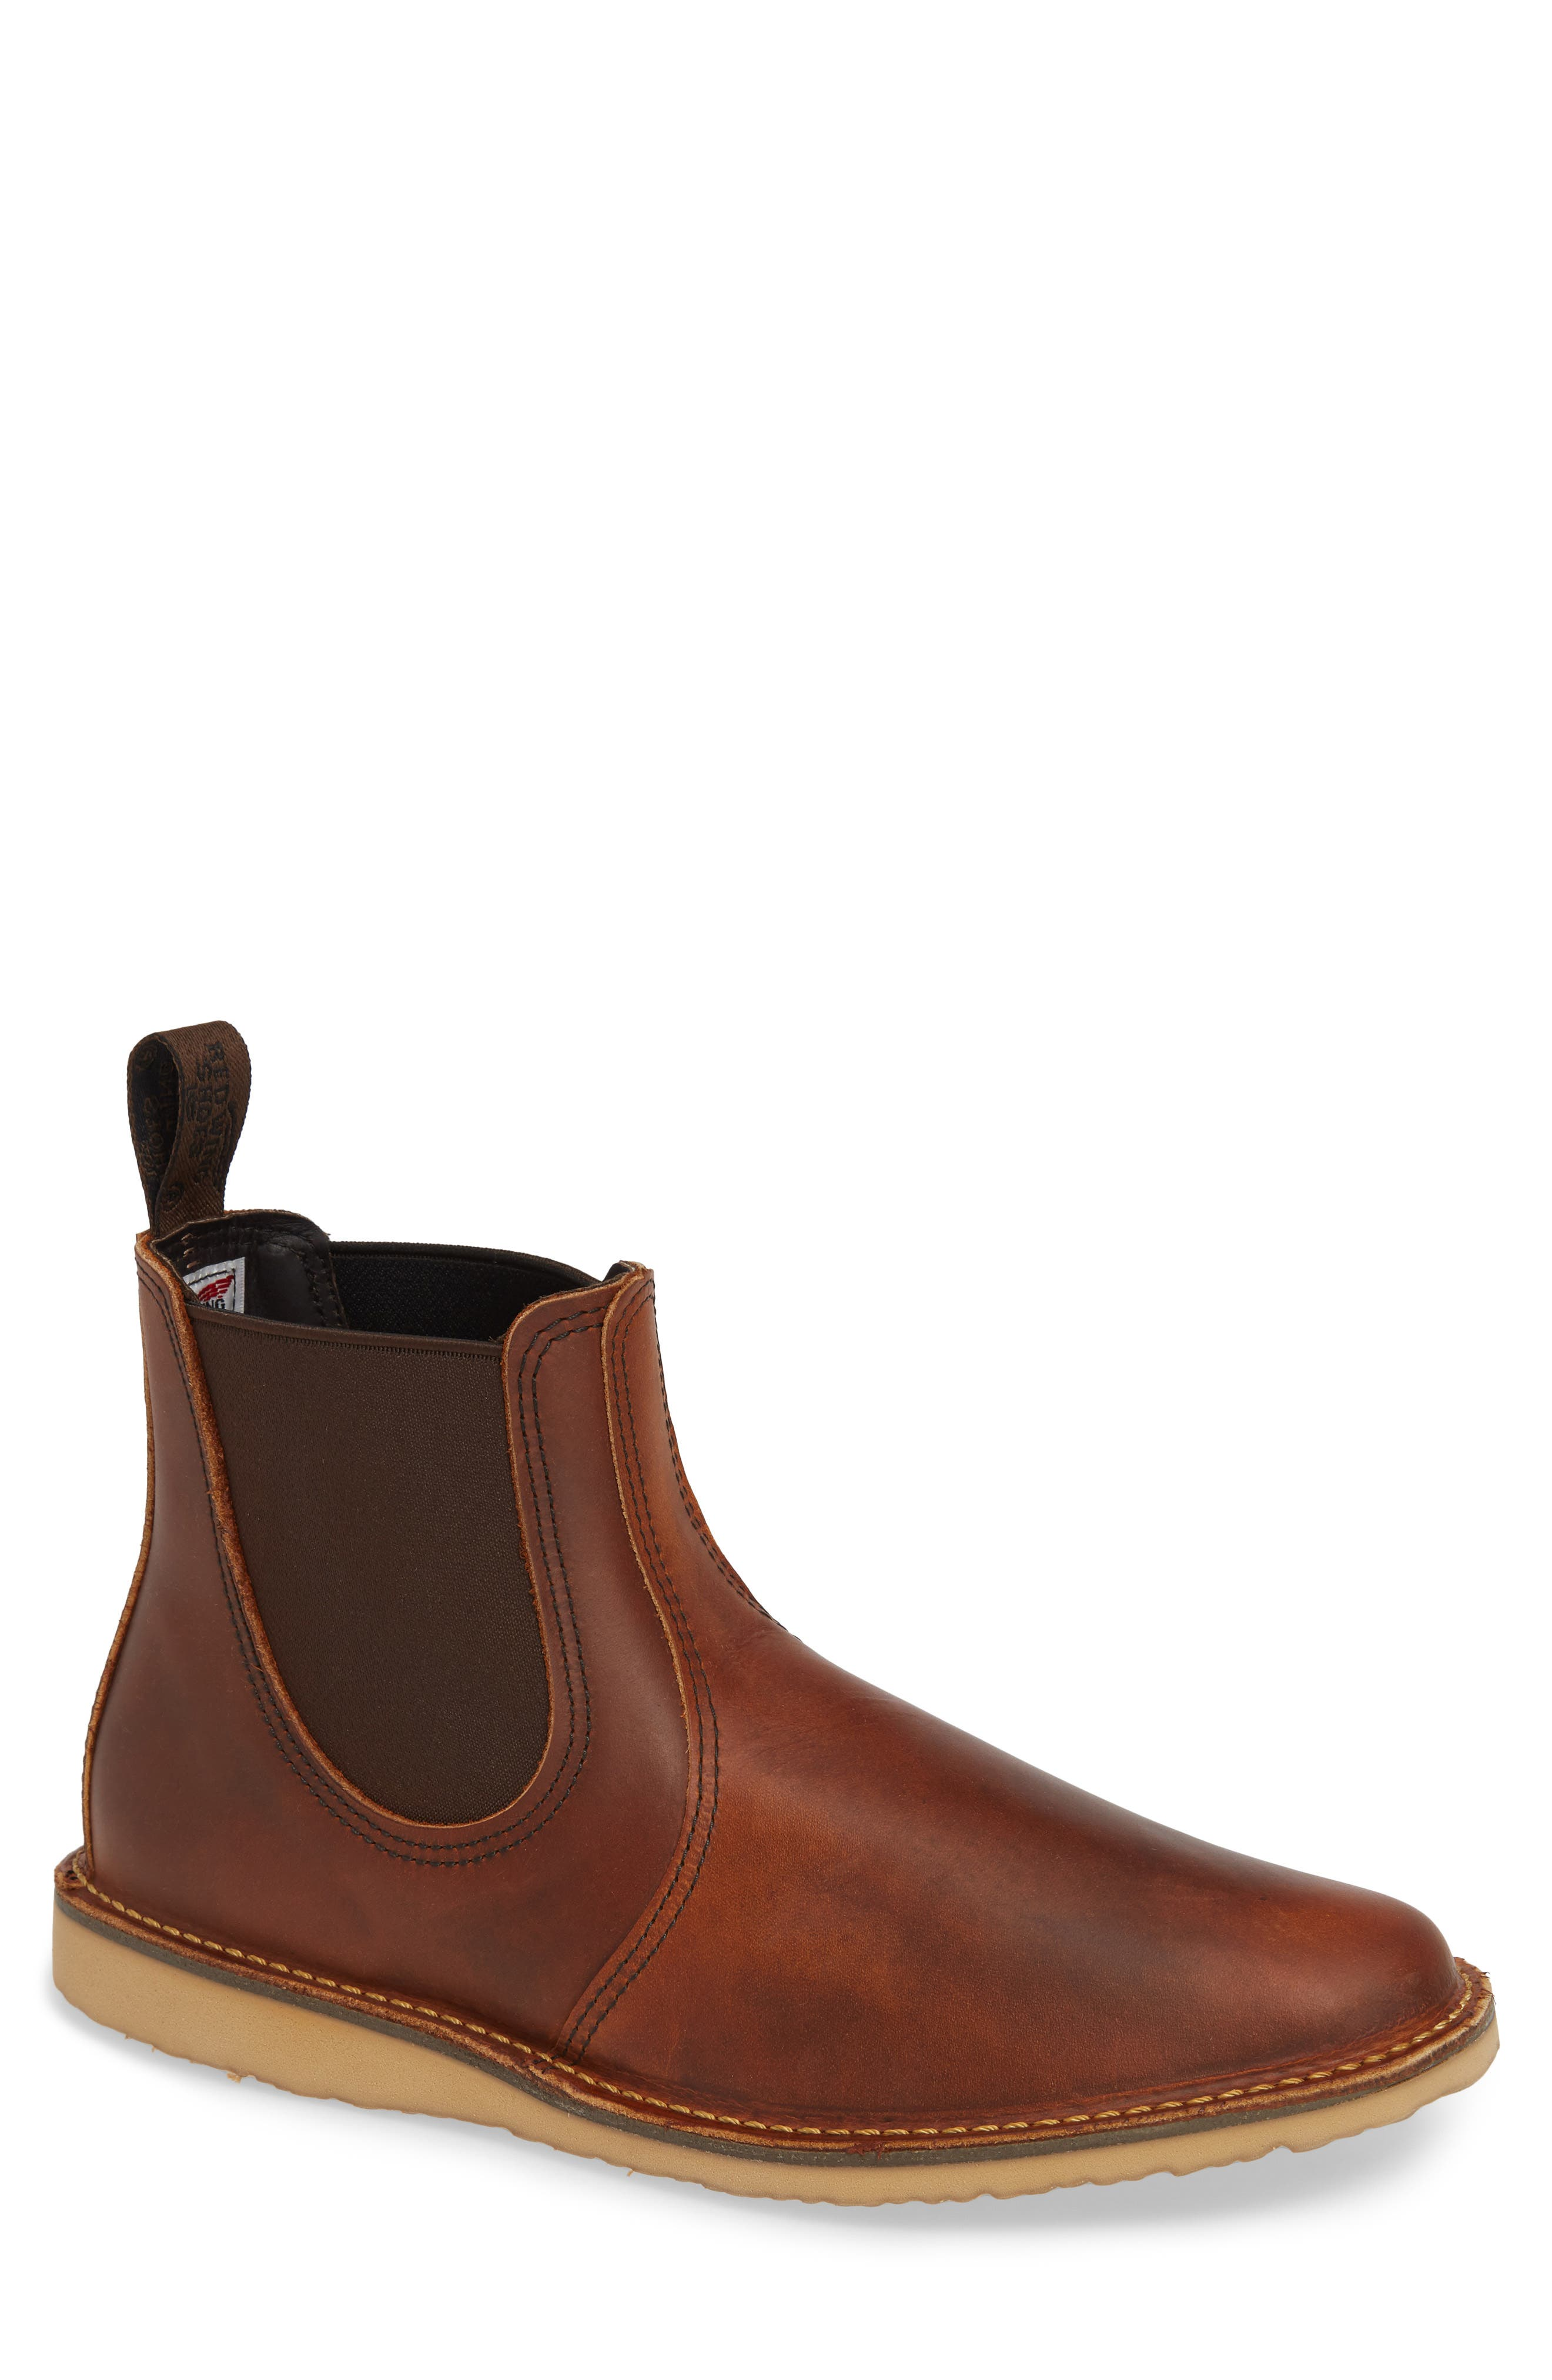 Red Wing Chelsea Boot, Brown